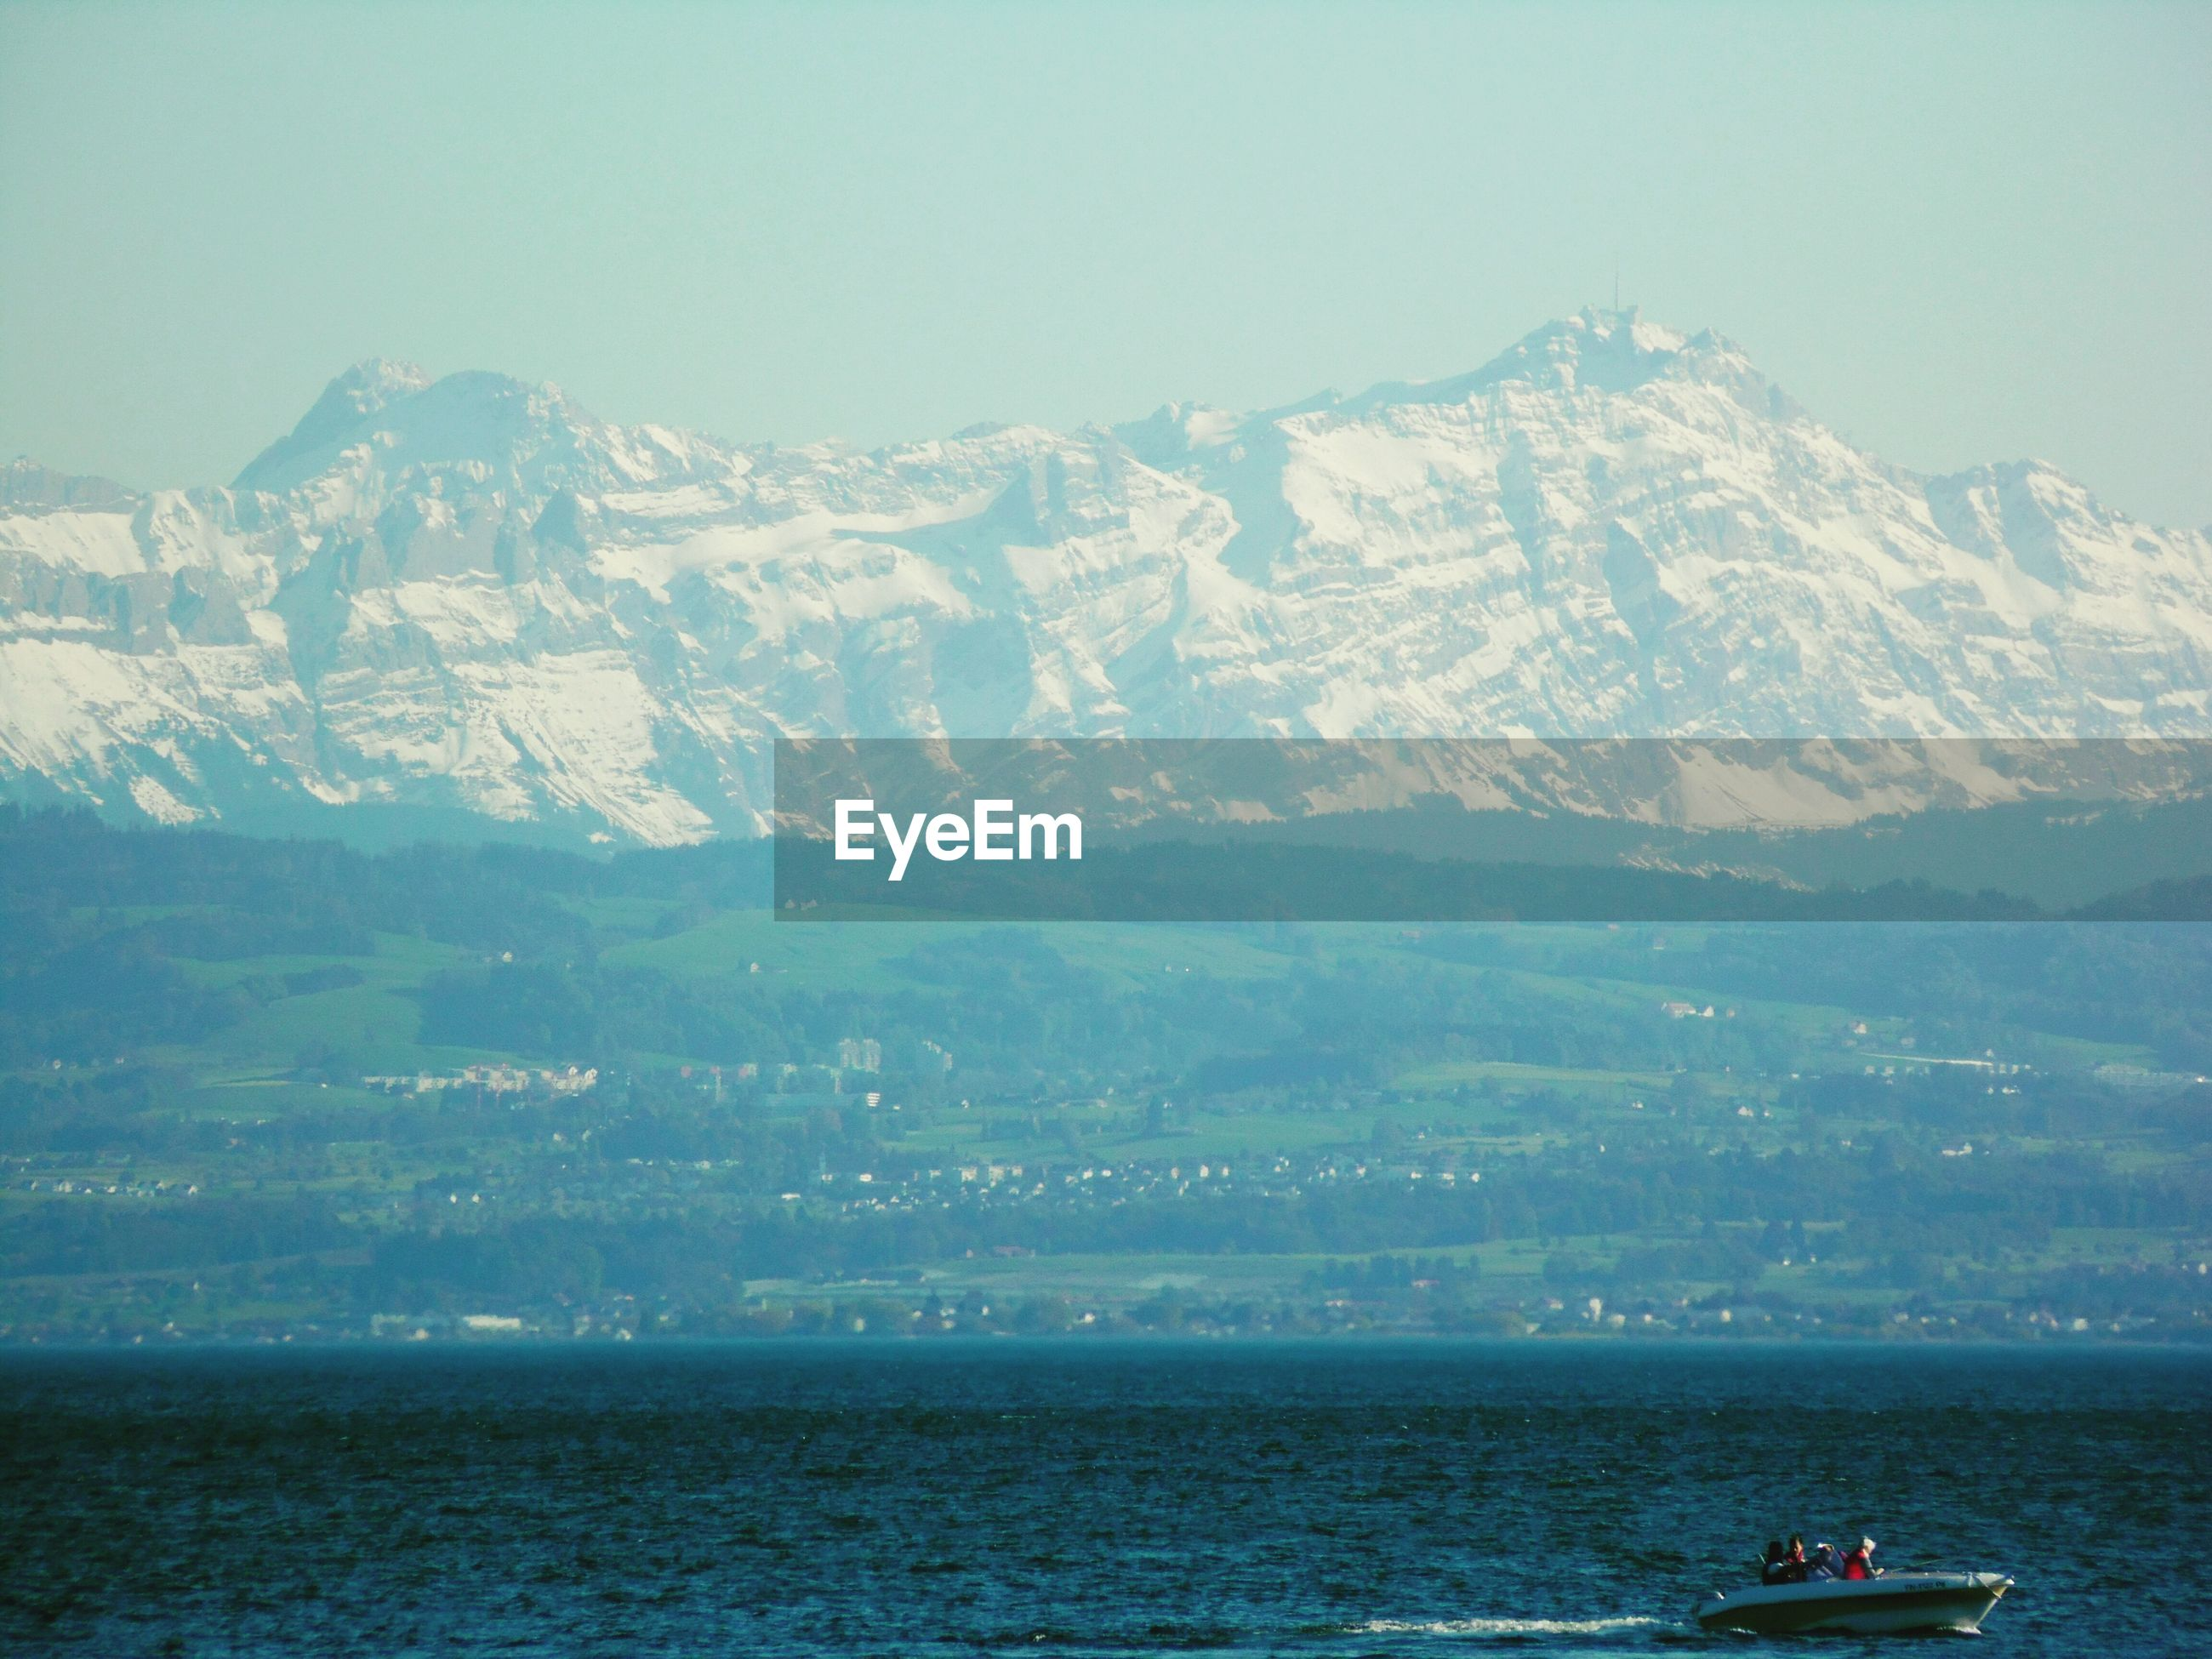 SCENIC VIEW OF MOUNTAINS AND SEA